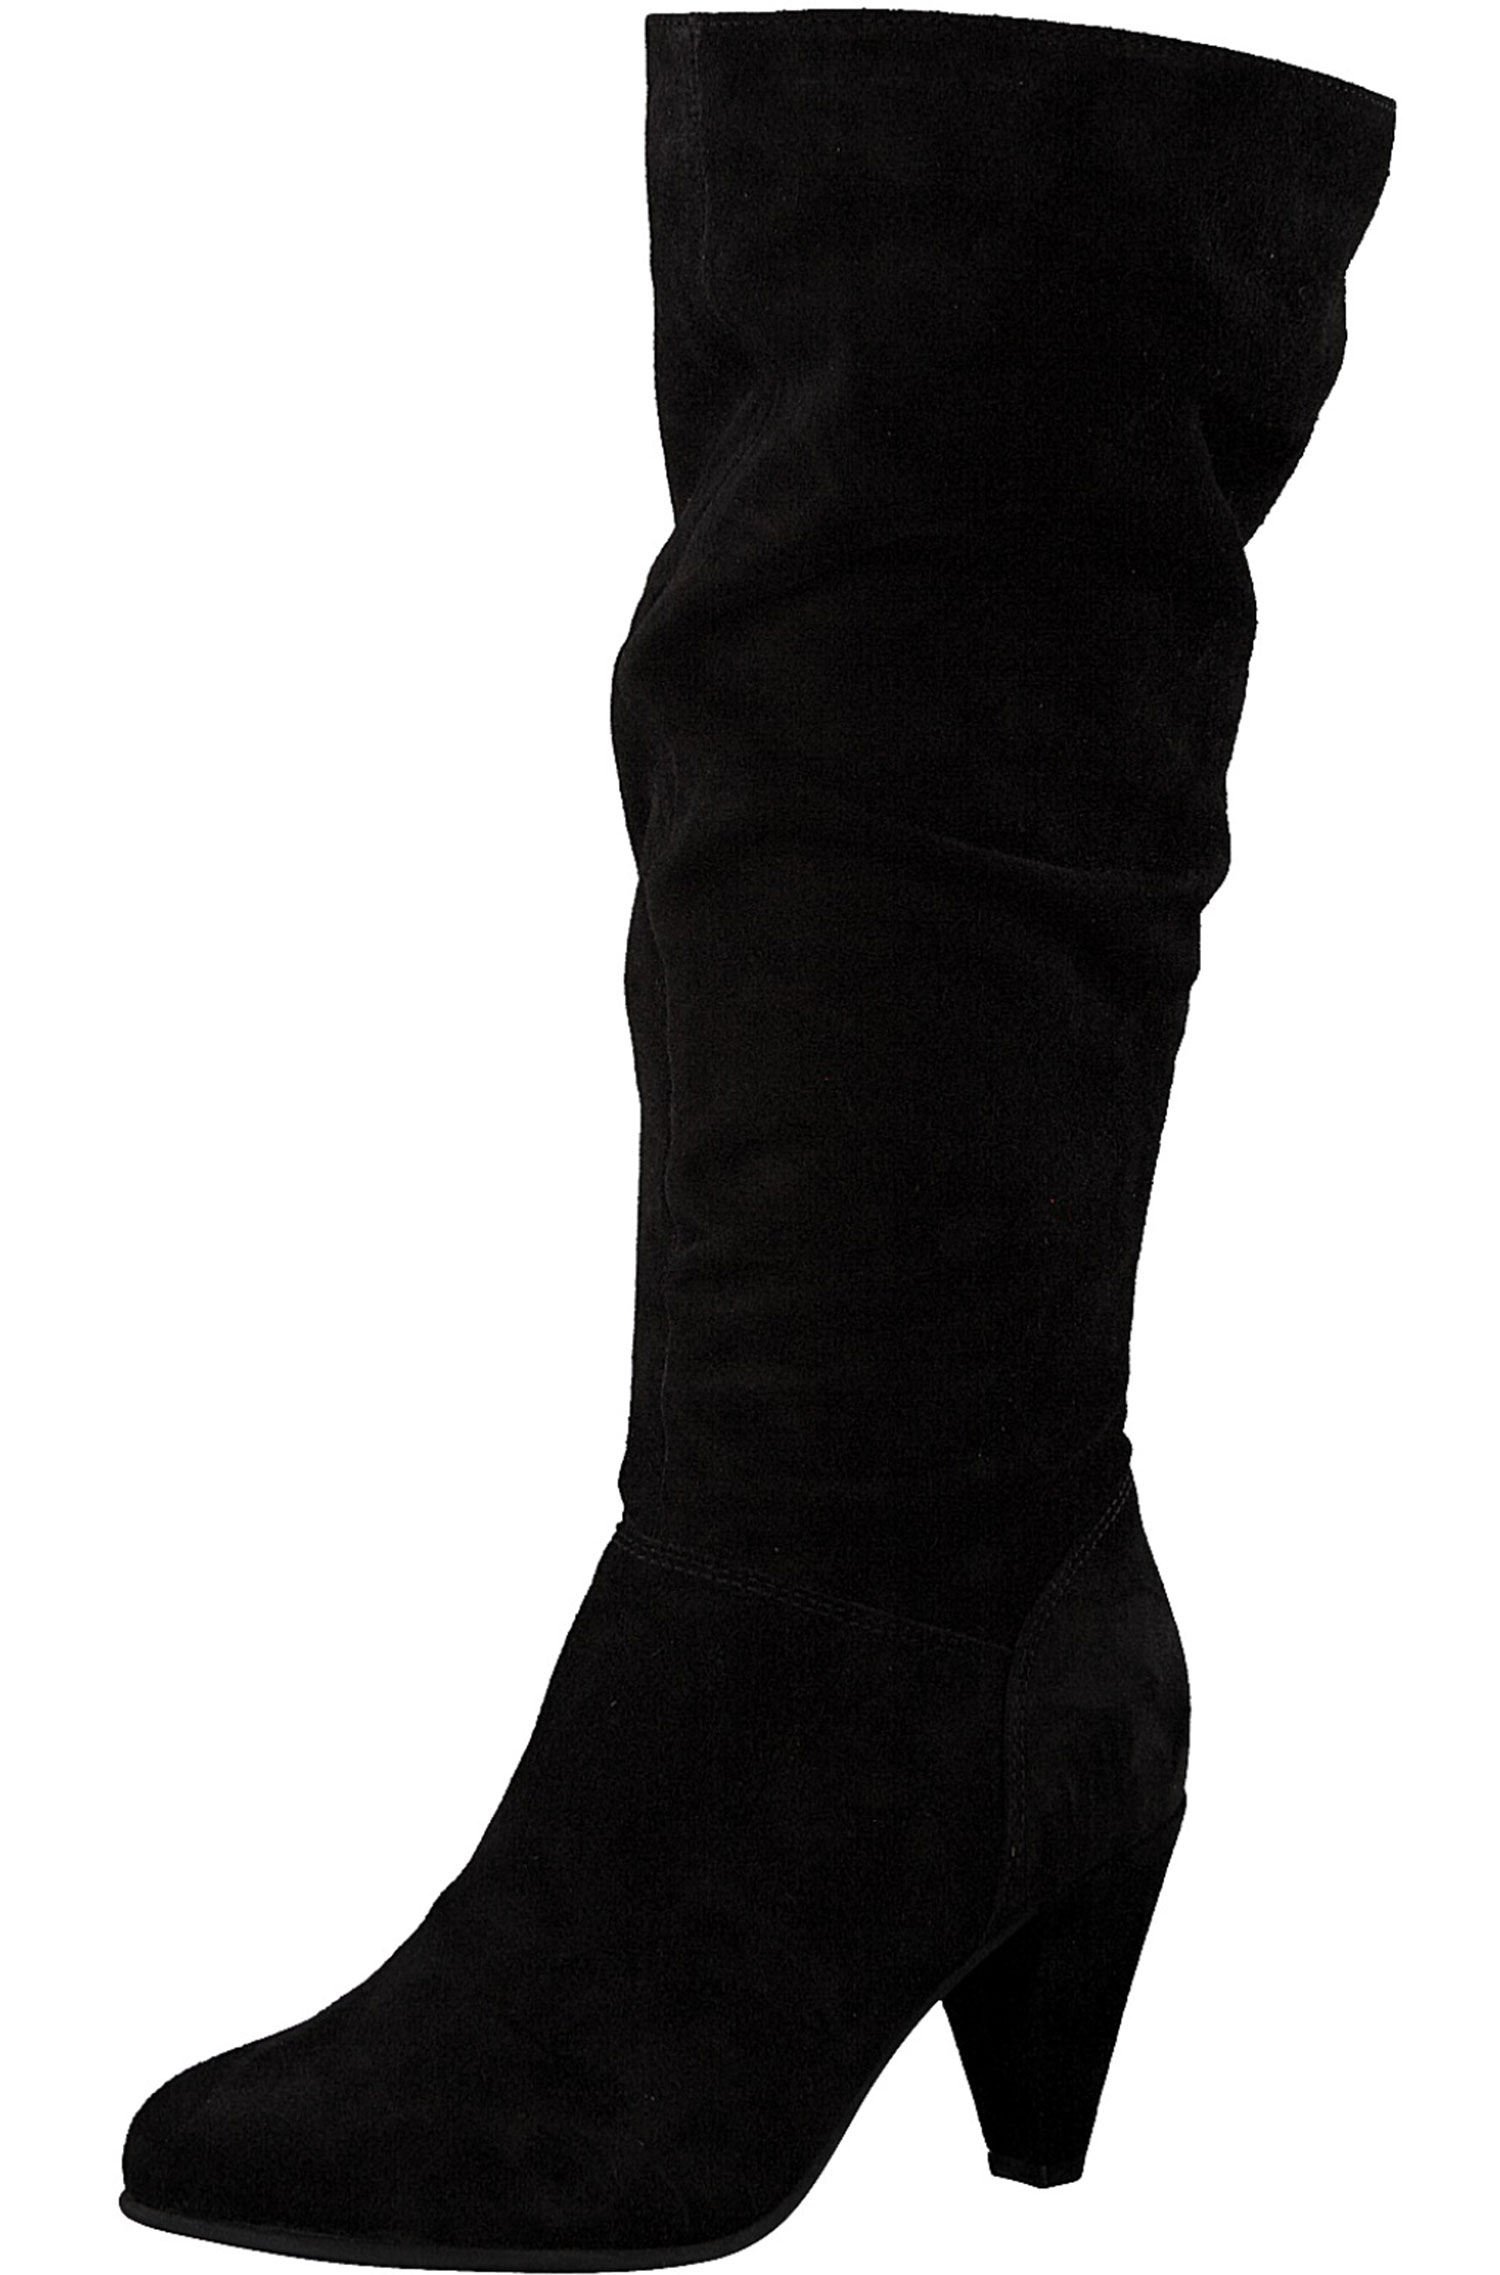 Tamaris Women's Boots Ankle Boots Winter 25539-21 001 Black New